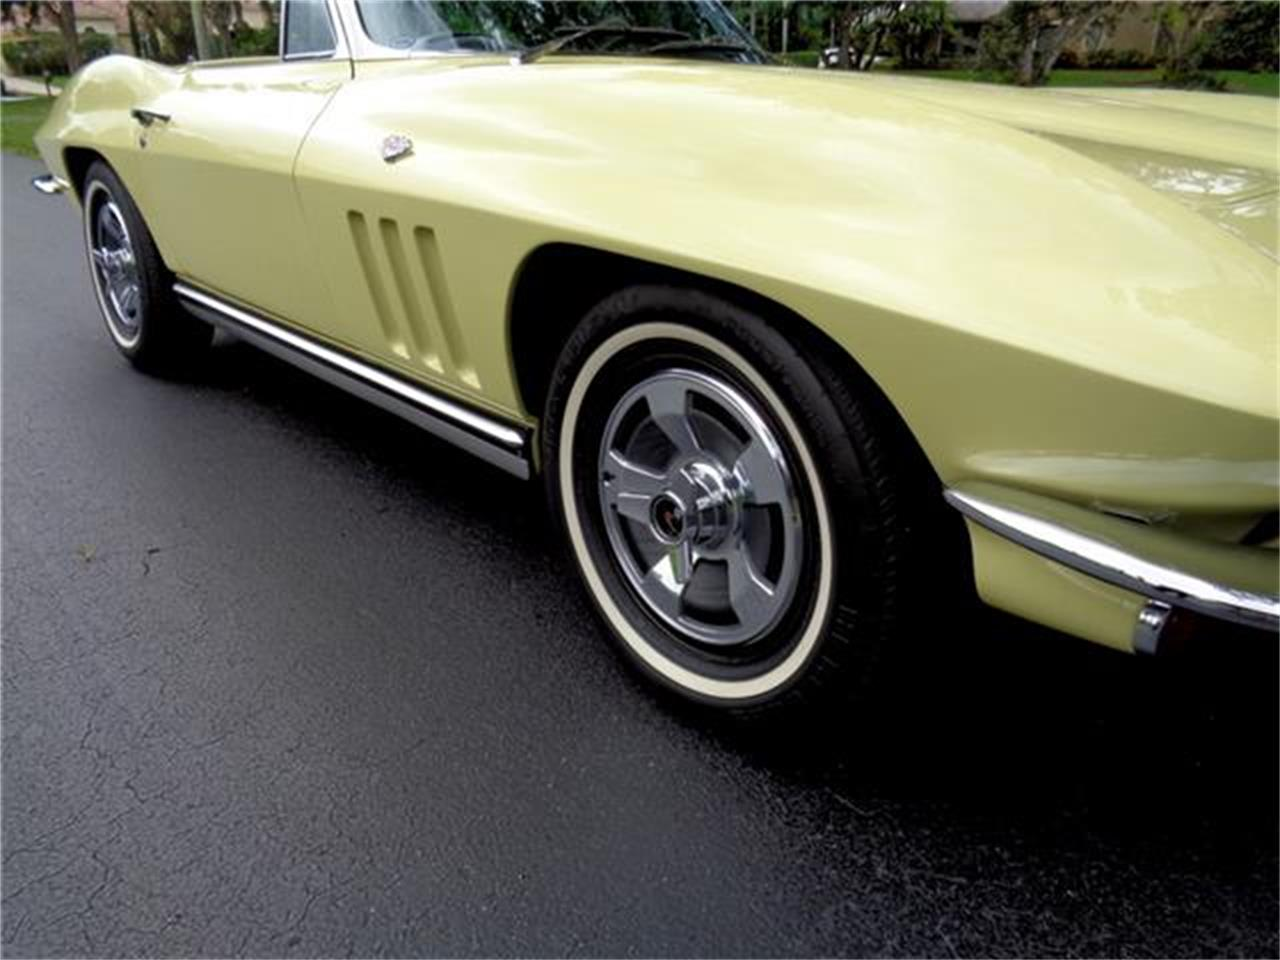 Large Picture of '65 Chevrolet Corvette located in South Carolina - $59,999.00 Offered by a Private Seller - Q216